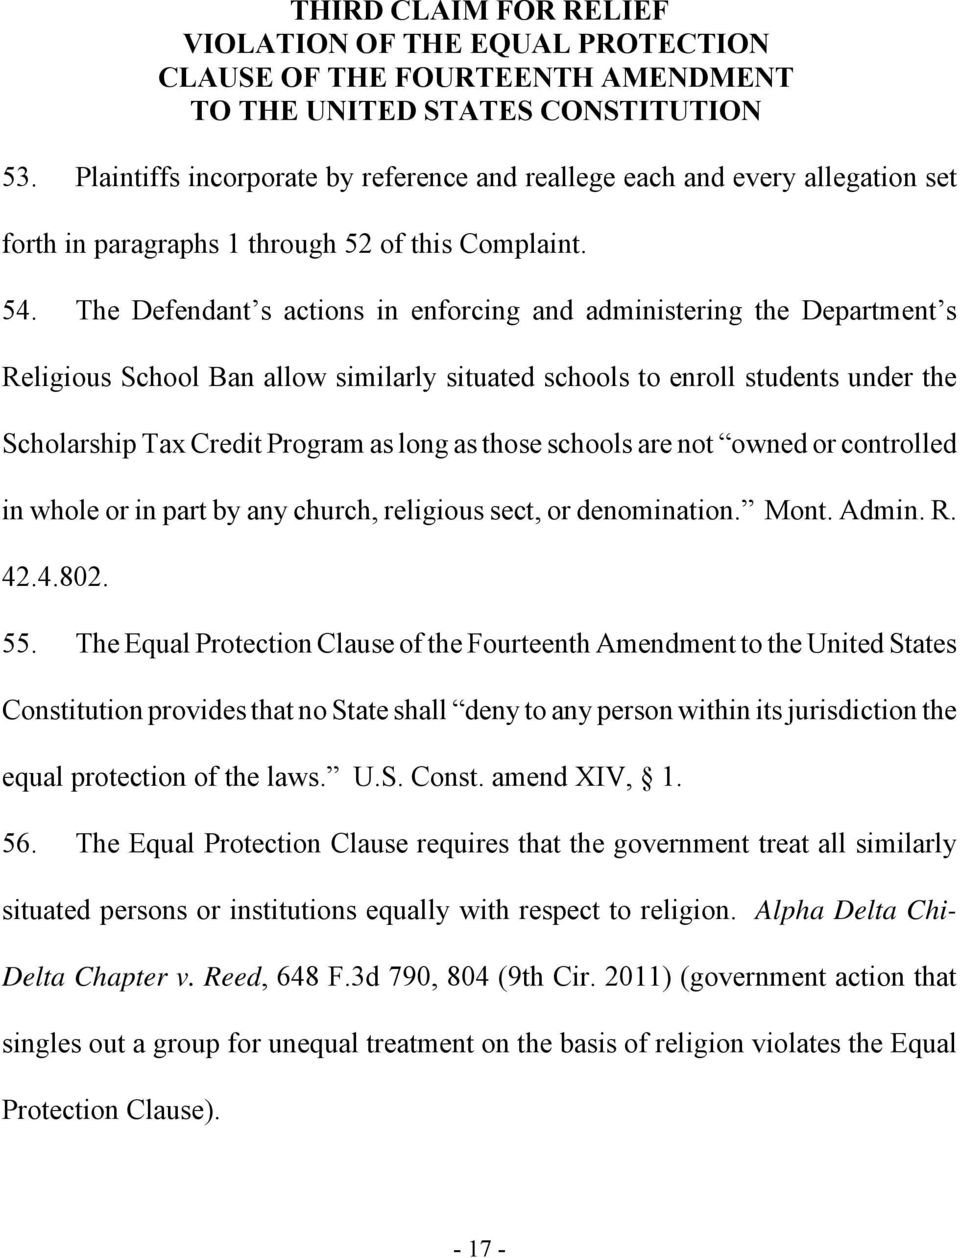 The Defendant s actions in enforcing and administering the Department s Religious School Ban allow similarly situated schools to enroll students under the Scholarship Tax Credit Program as long as